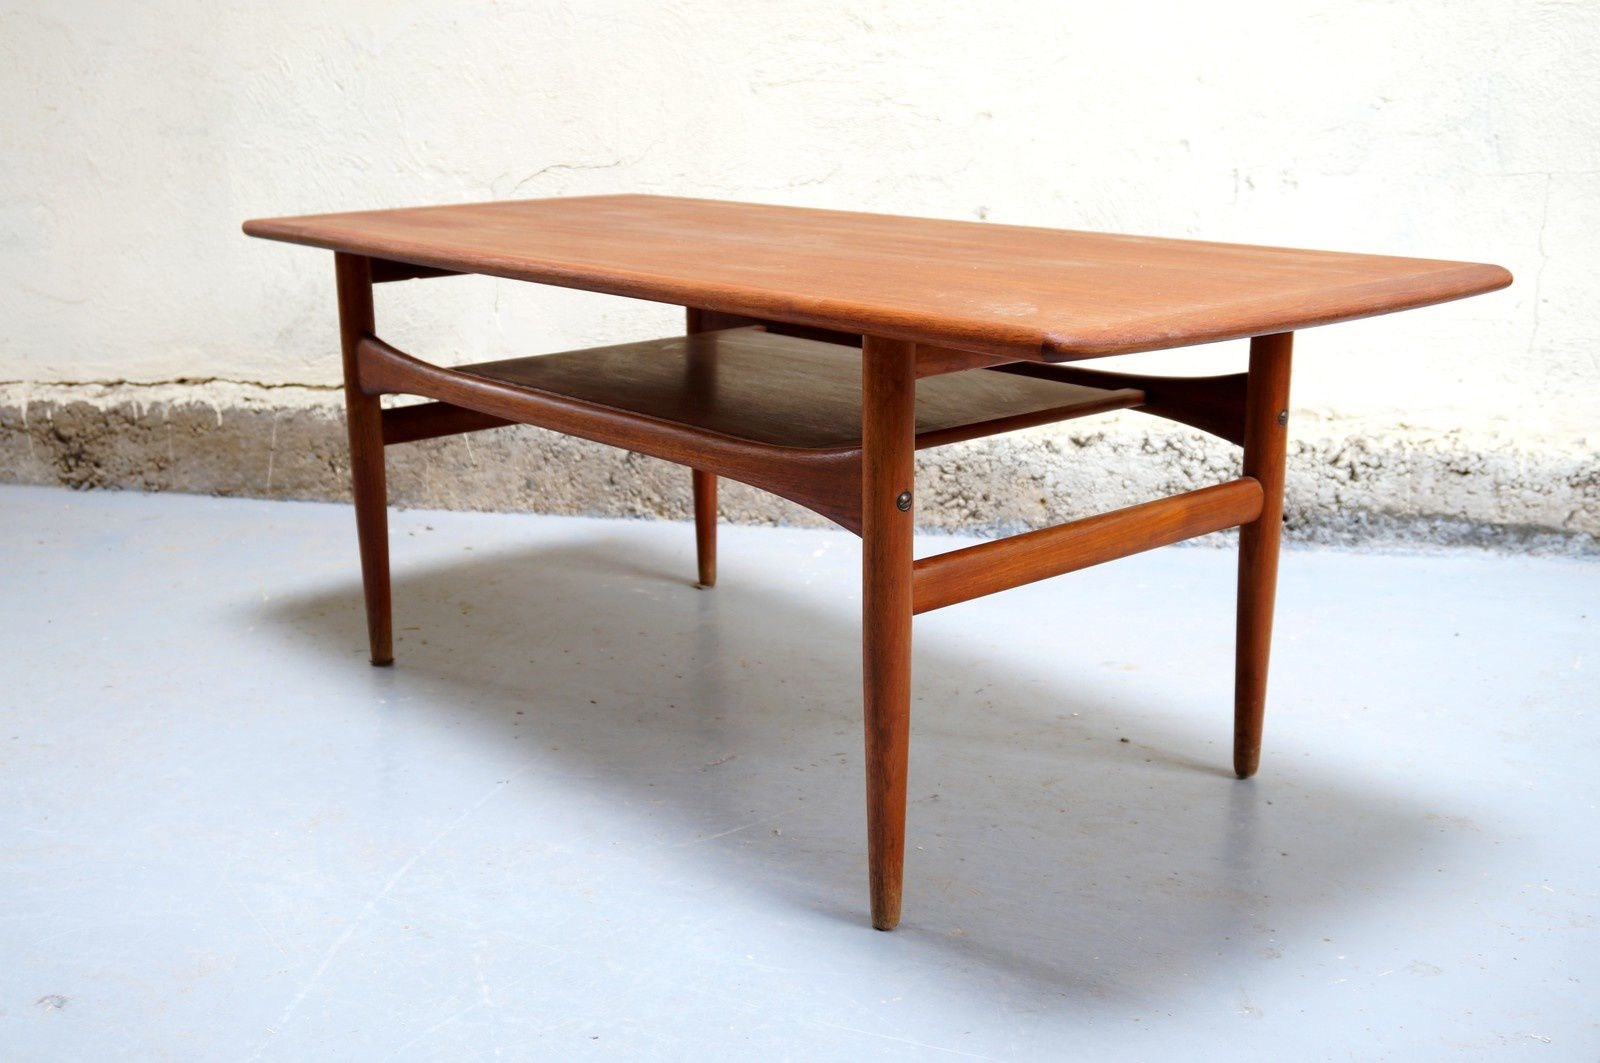 Table basse scandinave arrebo mobler danois vintage danish for Table basse scandinave taupe